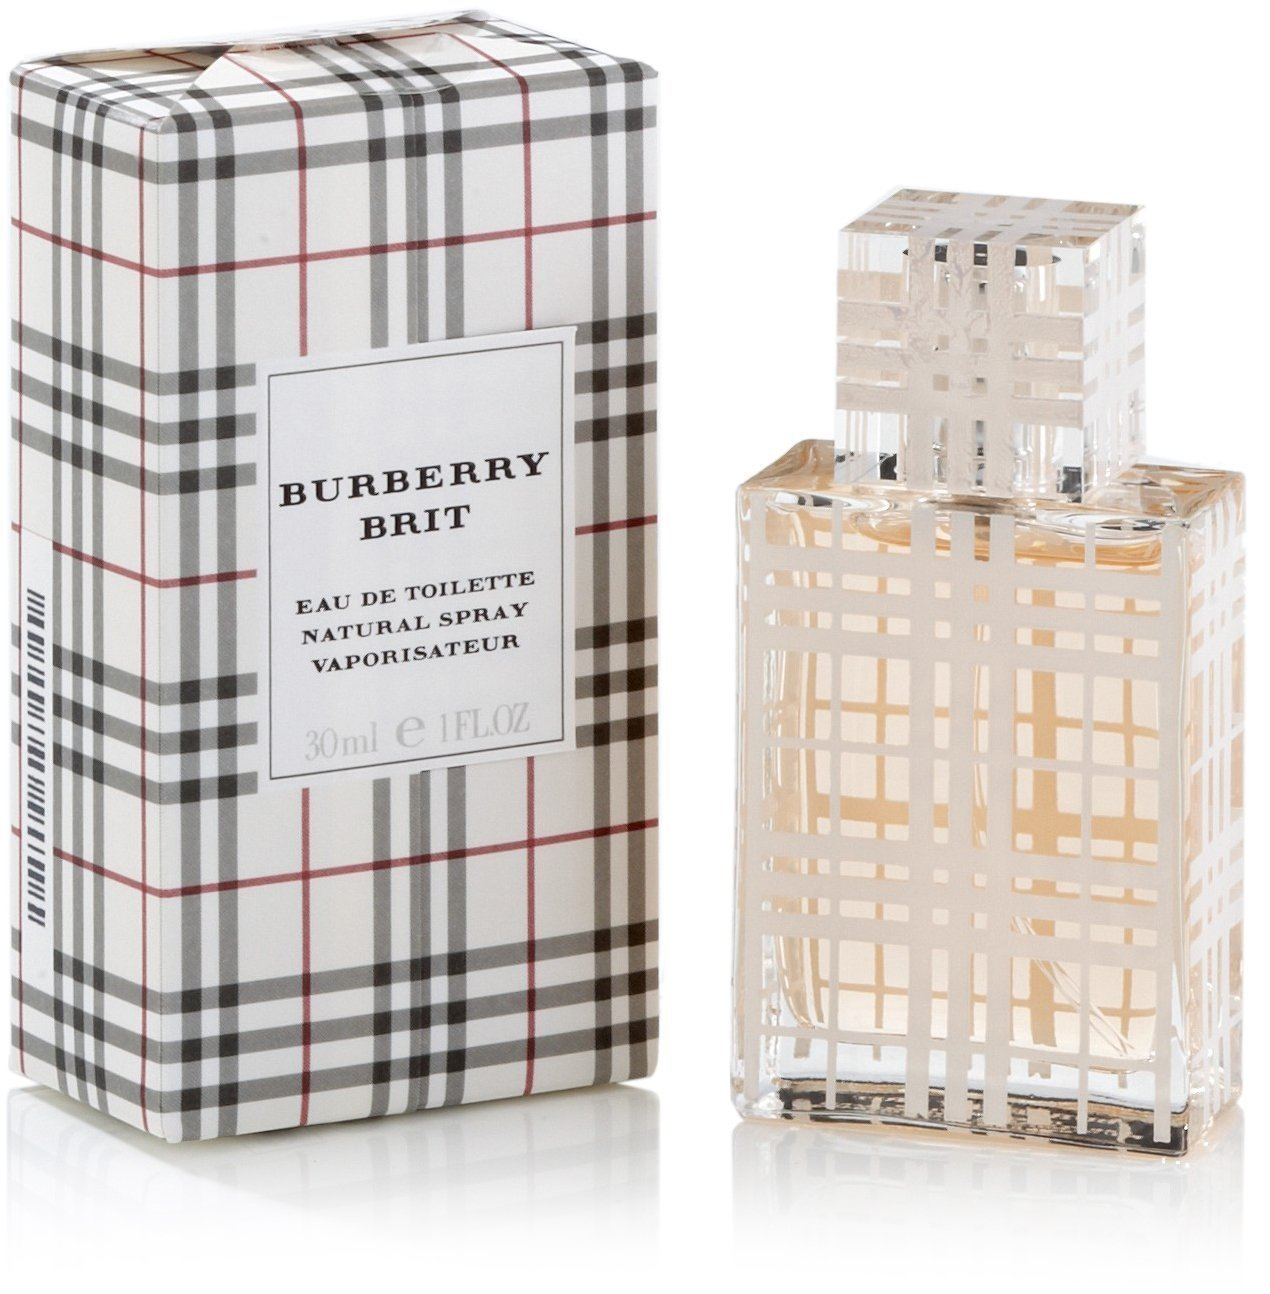 http://shopdep24h.com/images/nuoc-hoa-nu-mini/burberry-brit-for-women-edt-5ml/71be5OXfdfS._SL1294_.jpg